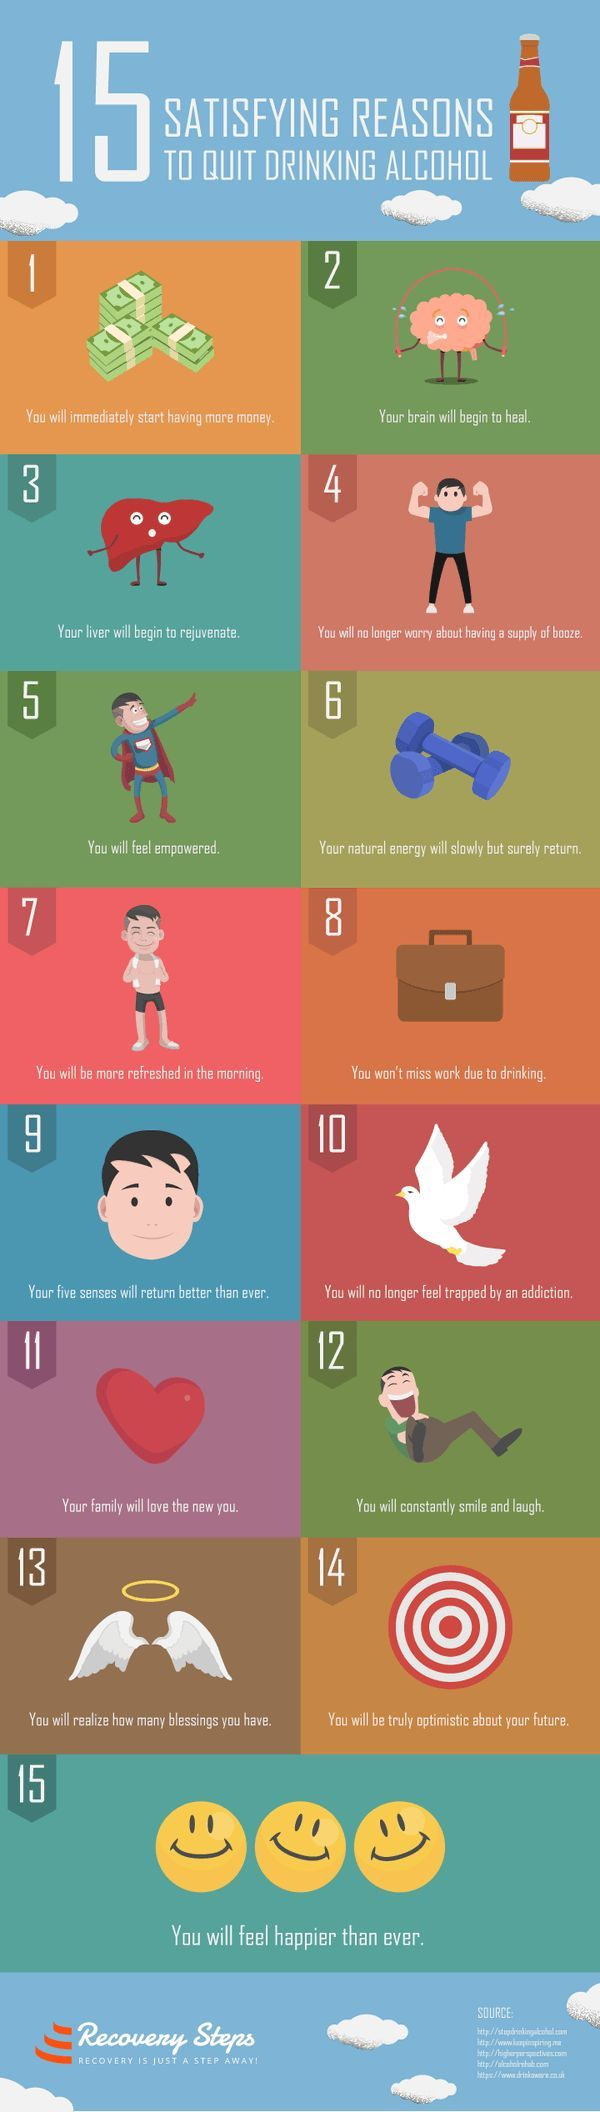 15 reasons to give up alcohol... Not addicted but good to know the benefits and getting healthy again